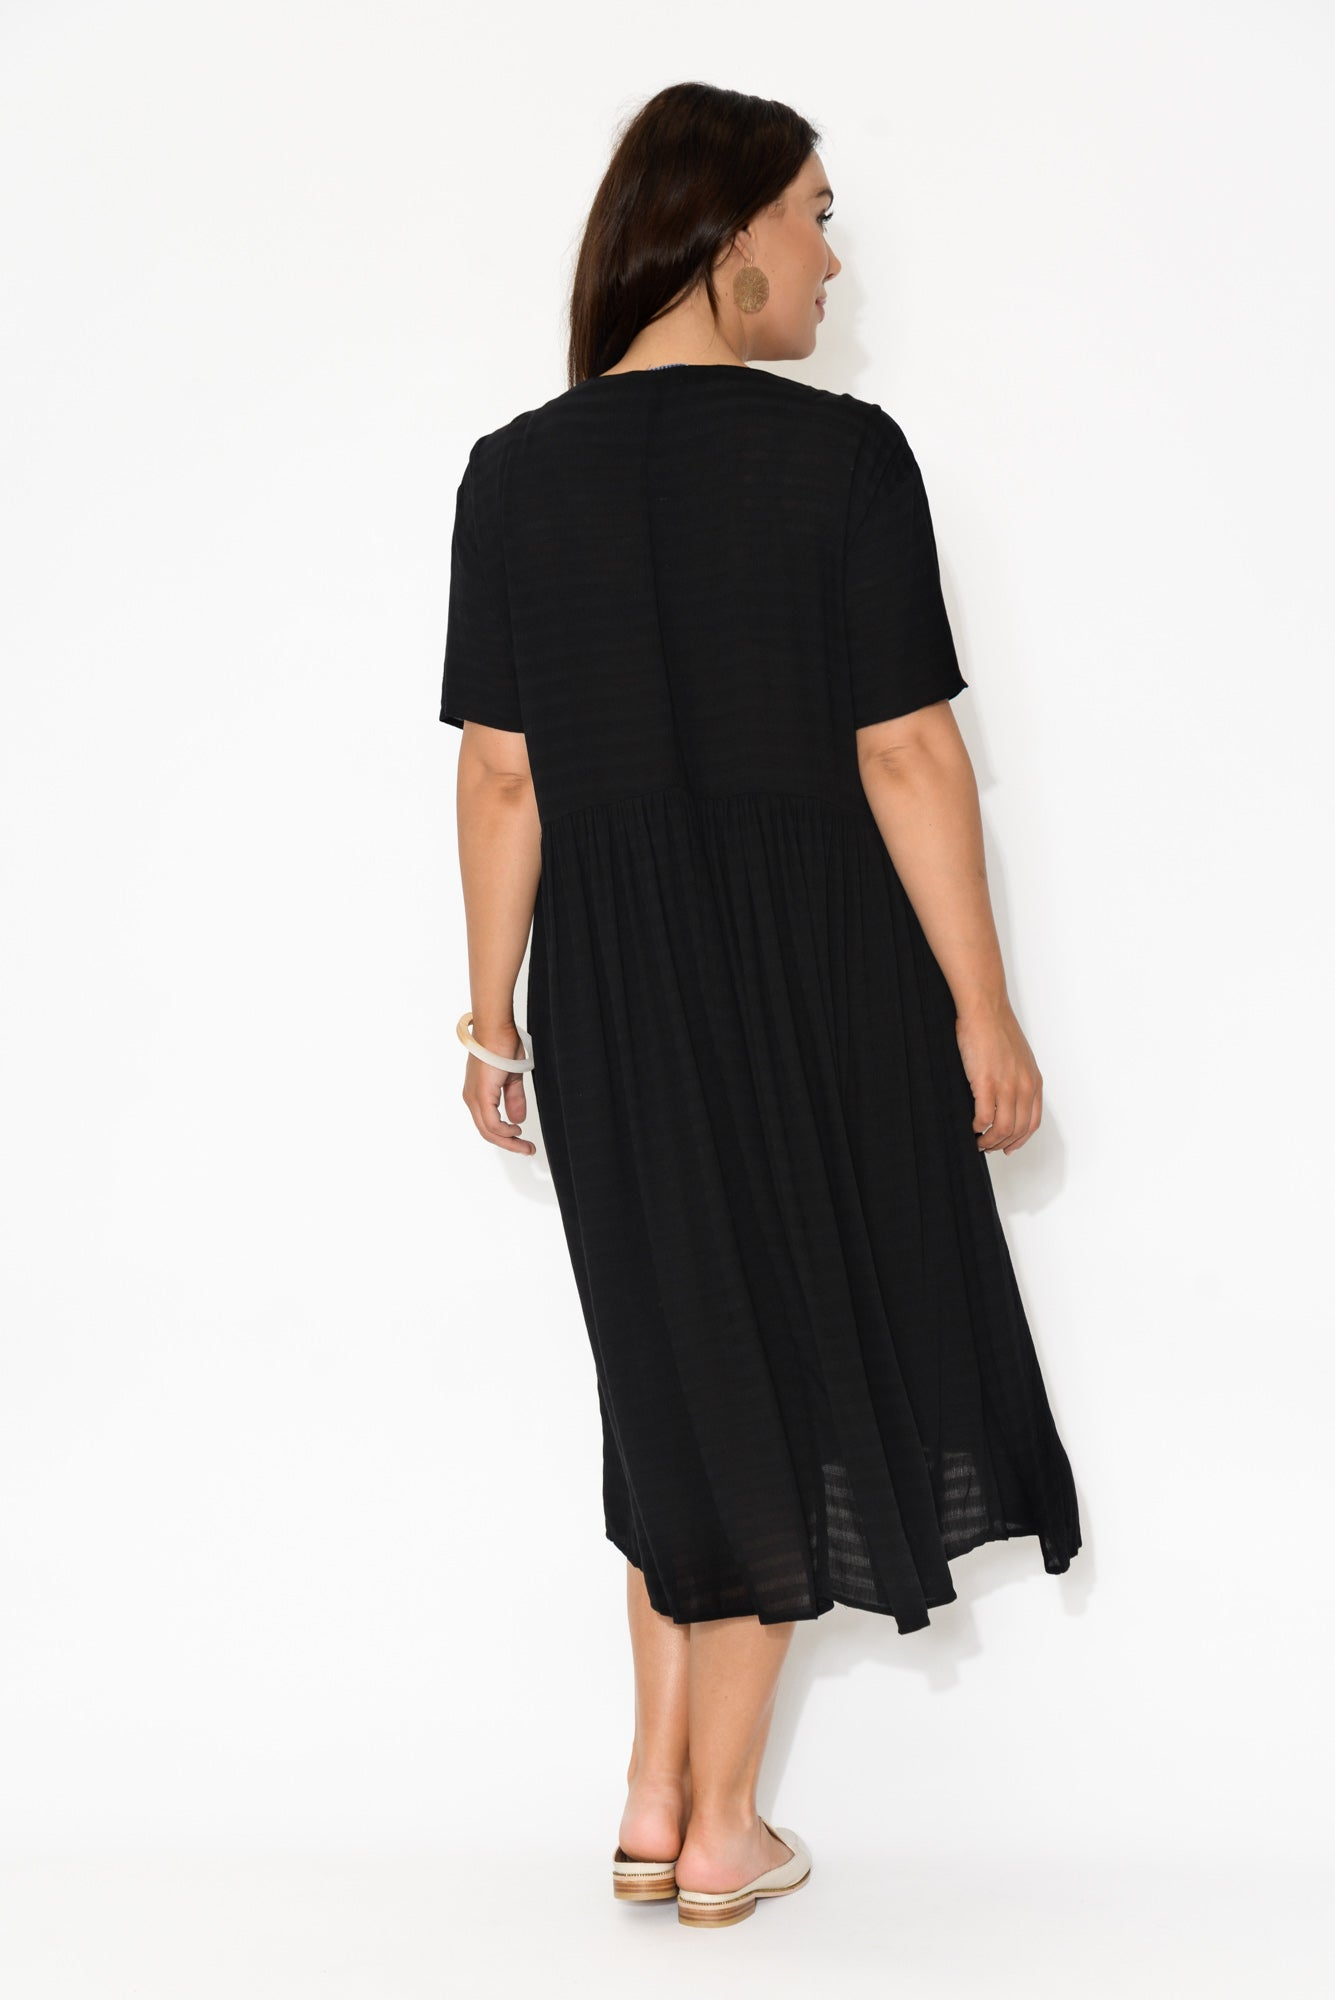 Wanda Black Textured Stripe Short Sleeve Dress